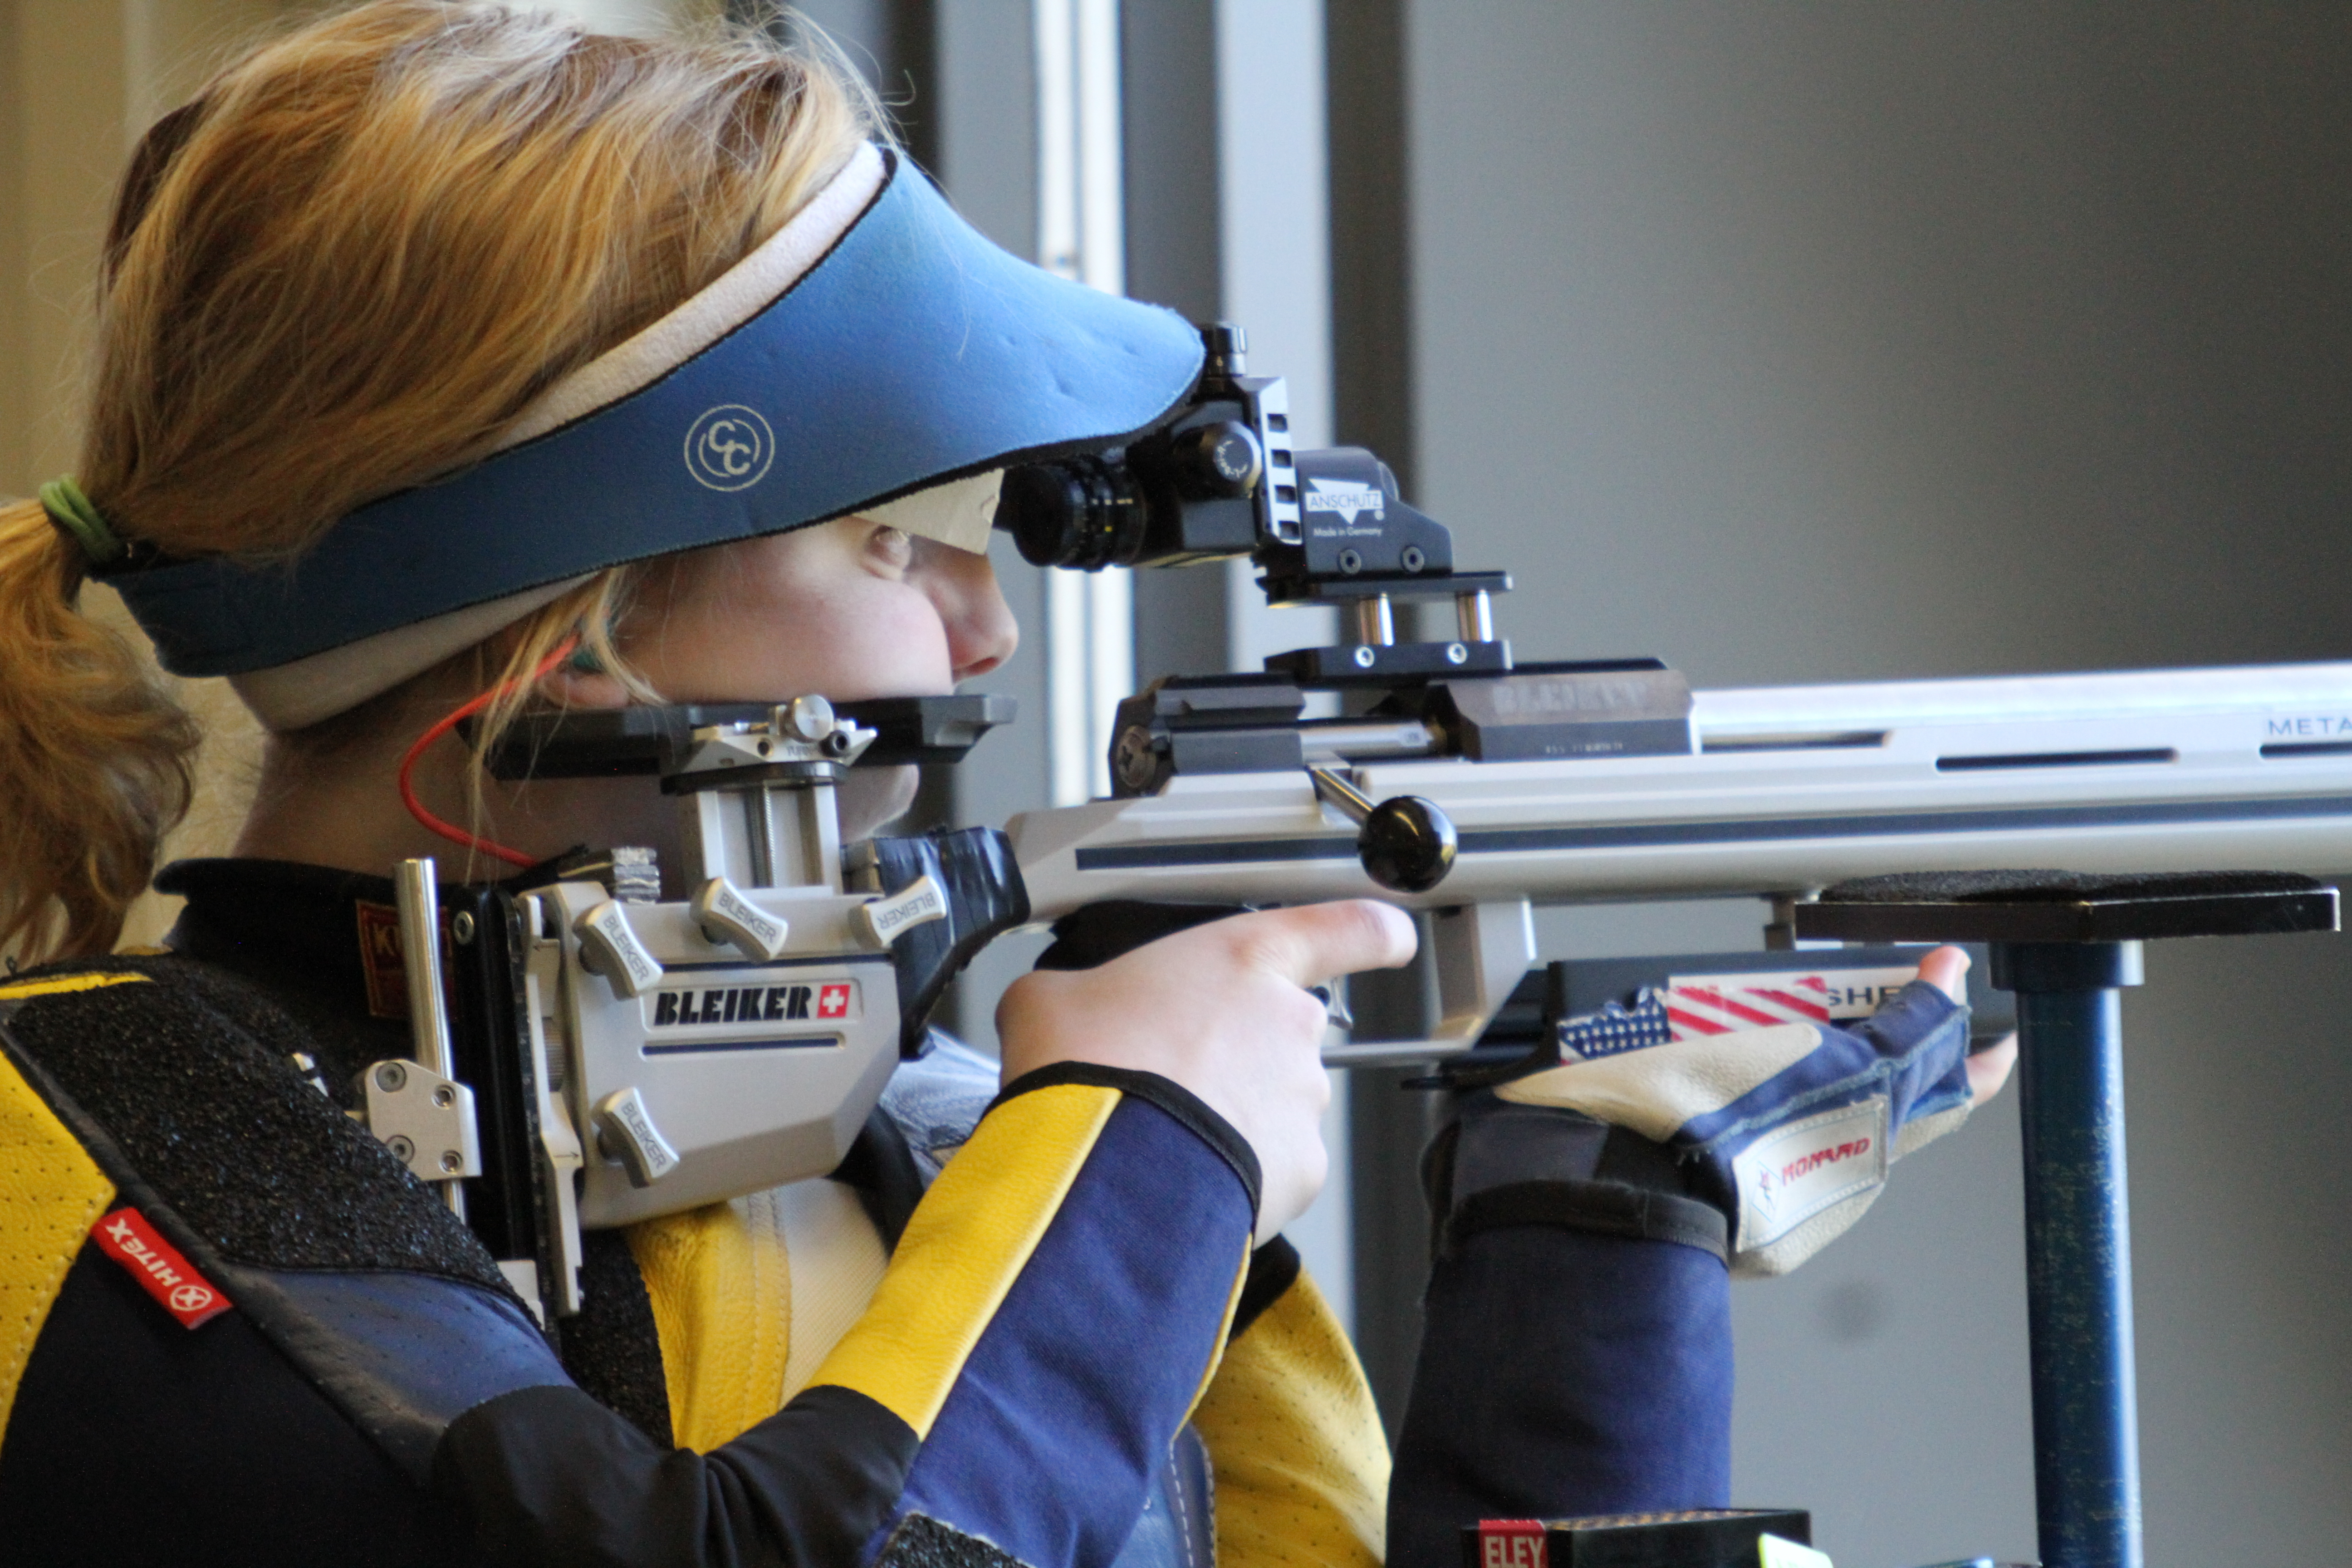 In this image provided by USA Shooting, Ginny Thrasher is shown at the 2016 U.S. Olympic Team Trials for Smallbore at Fort Benning, Ga., in April. Thrasher was a surprise double NCAA champion as a freshman and followed that up by winning the U.S. Olympic